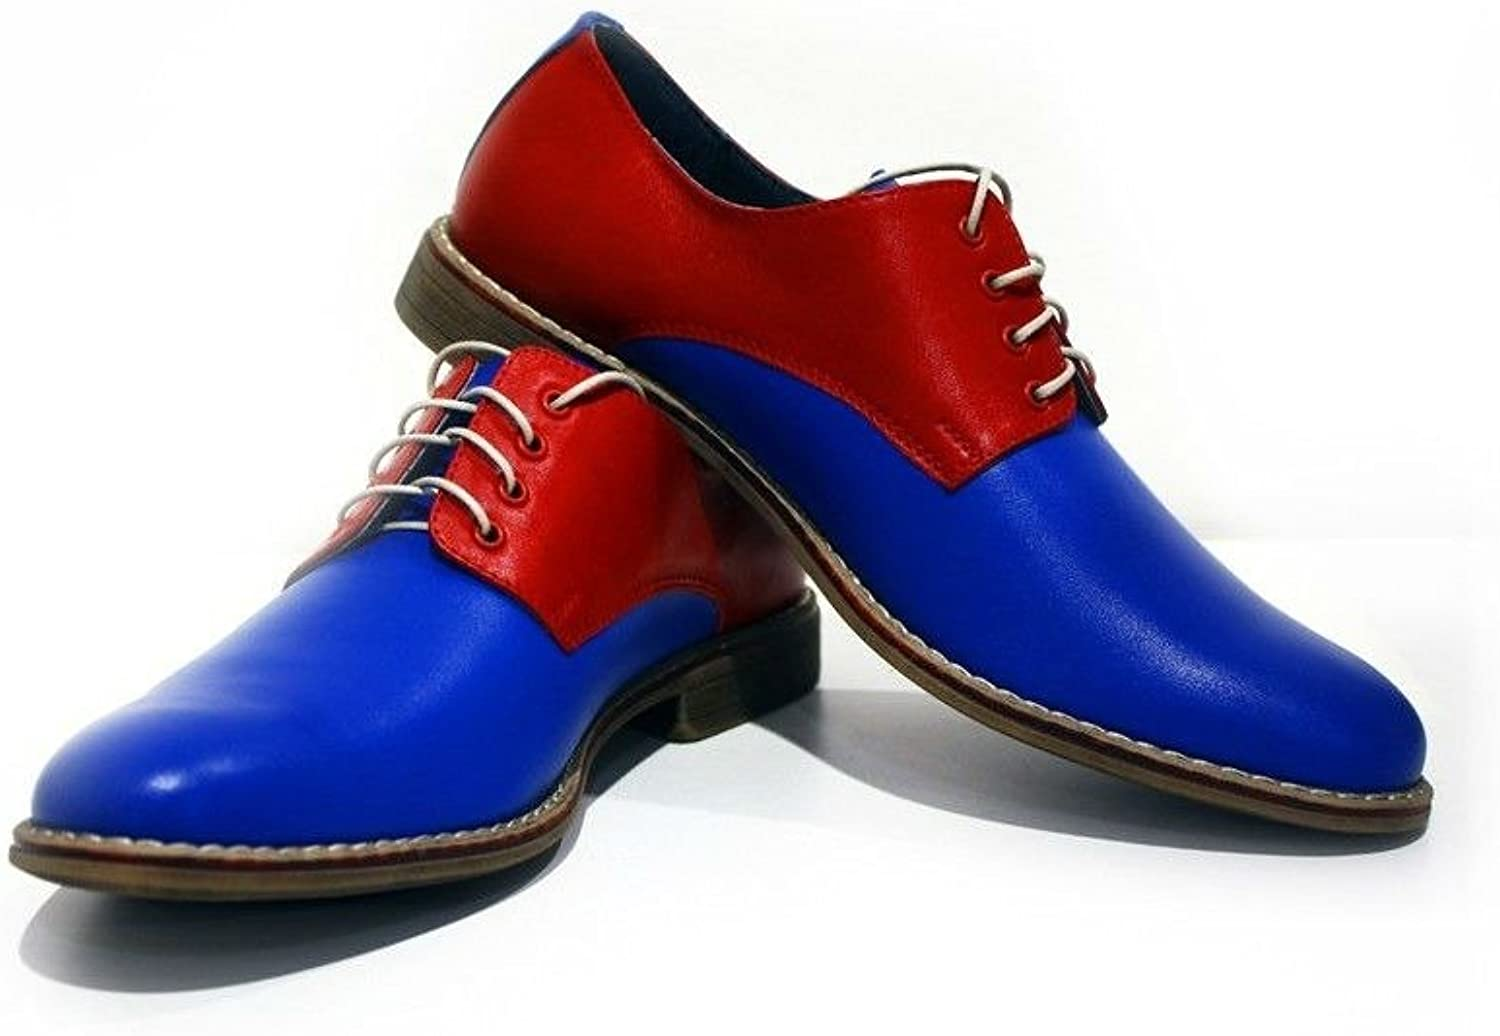 Modello Ascoli - Handmade Italian Leather Mens color bluee Oxfords Dress shoes - Cowhide Smooth Leather - Lace-Up